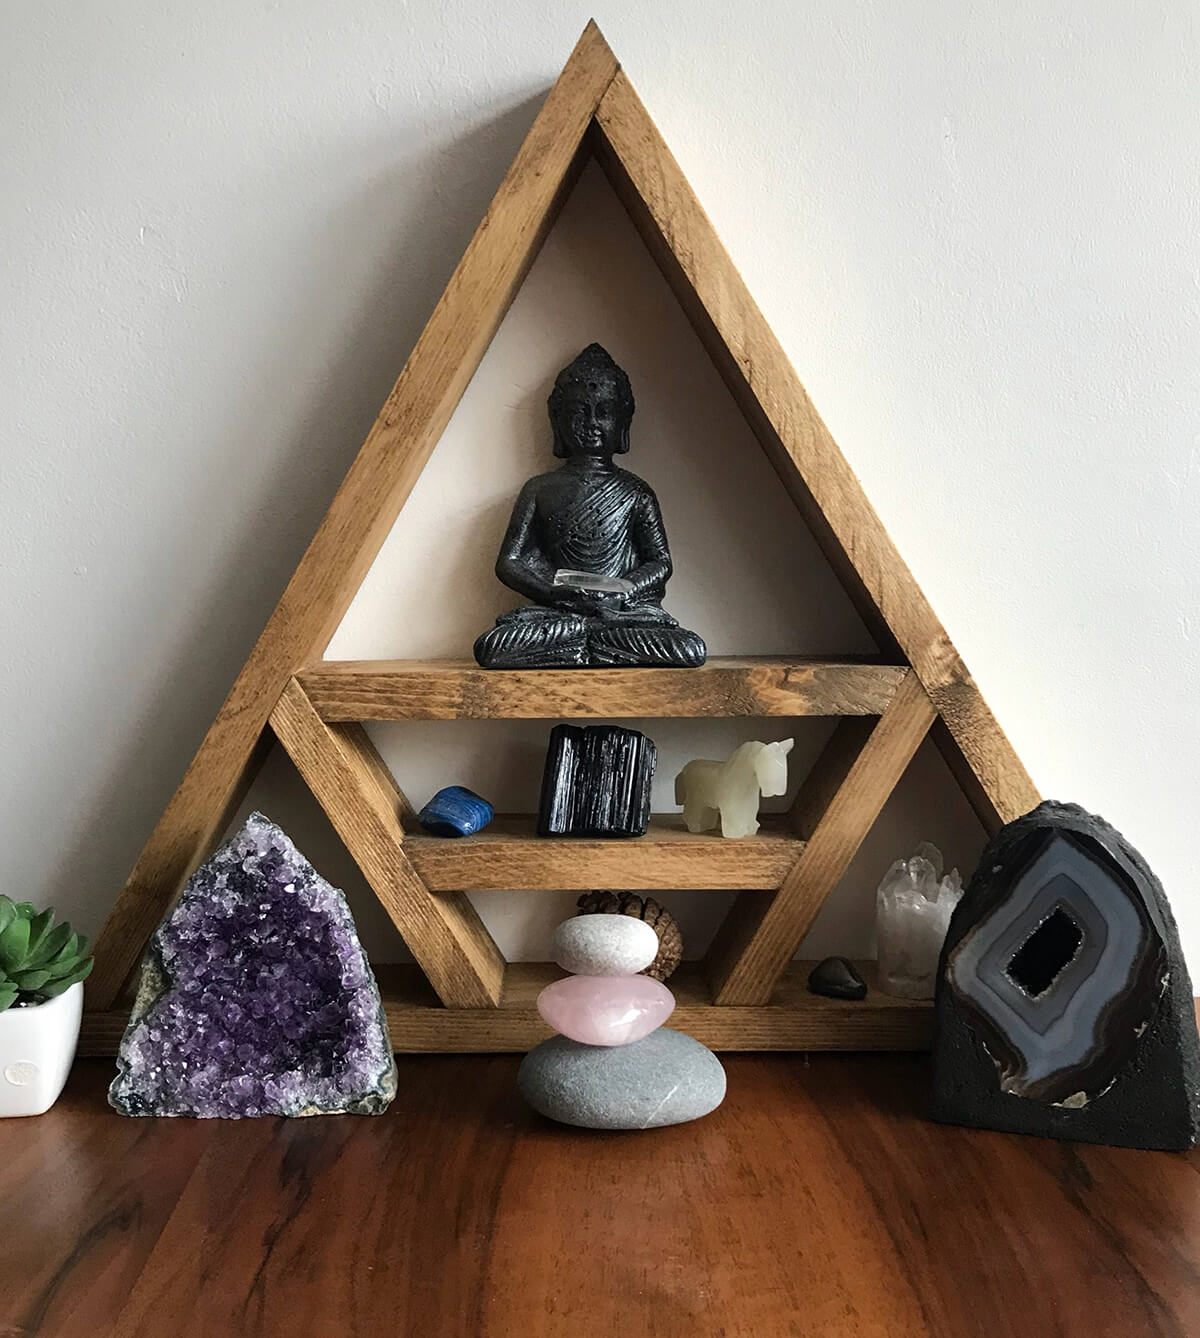 Triangle Frame for Holding Focal Objects